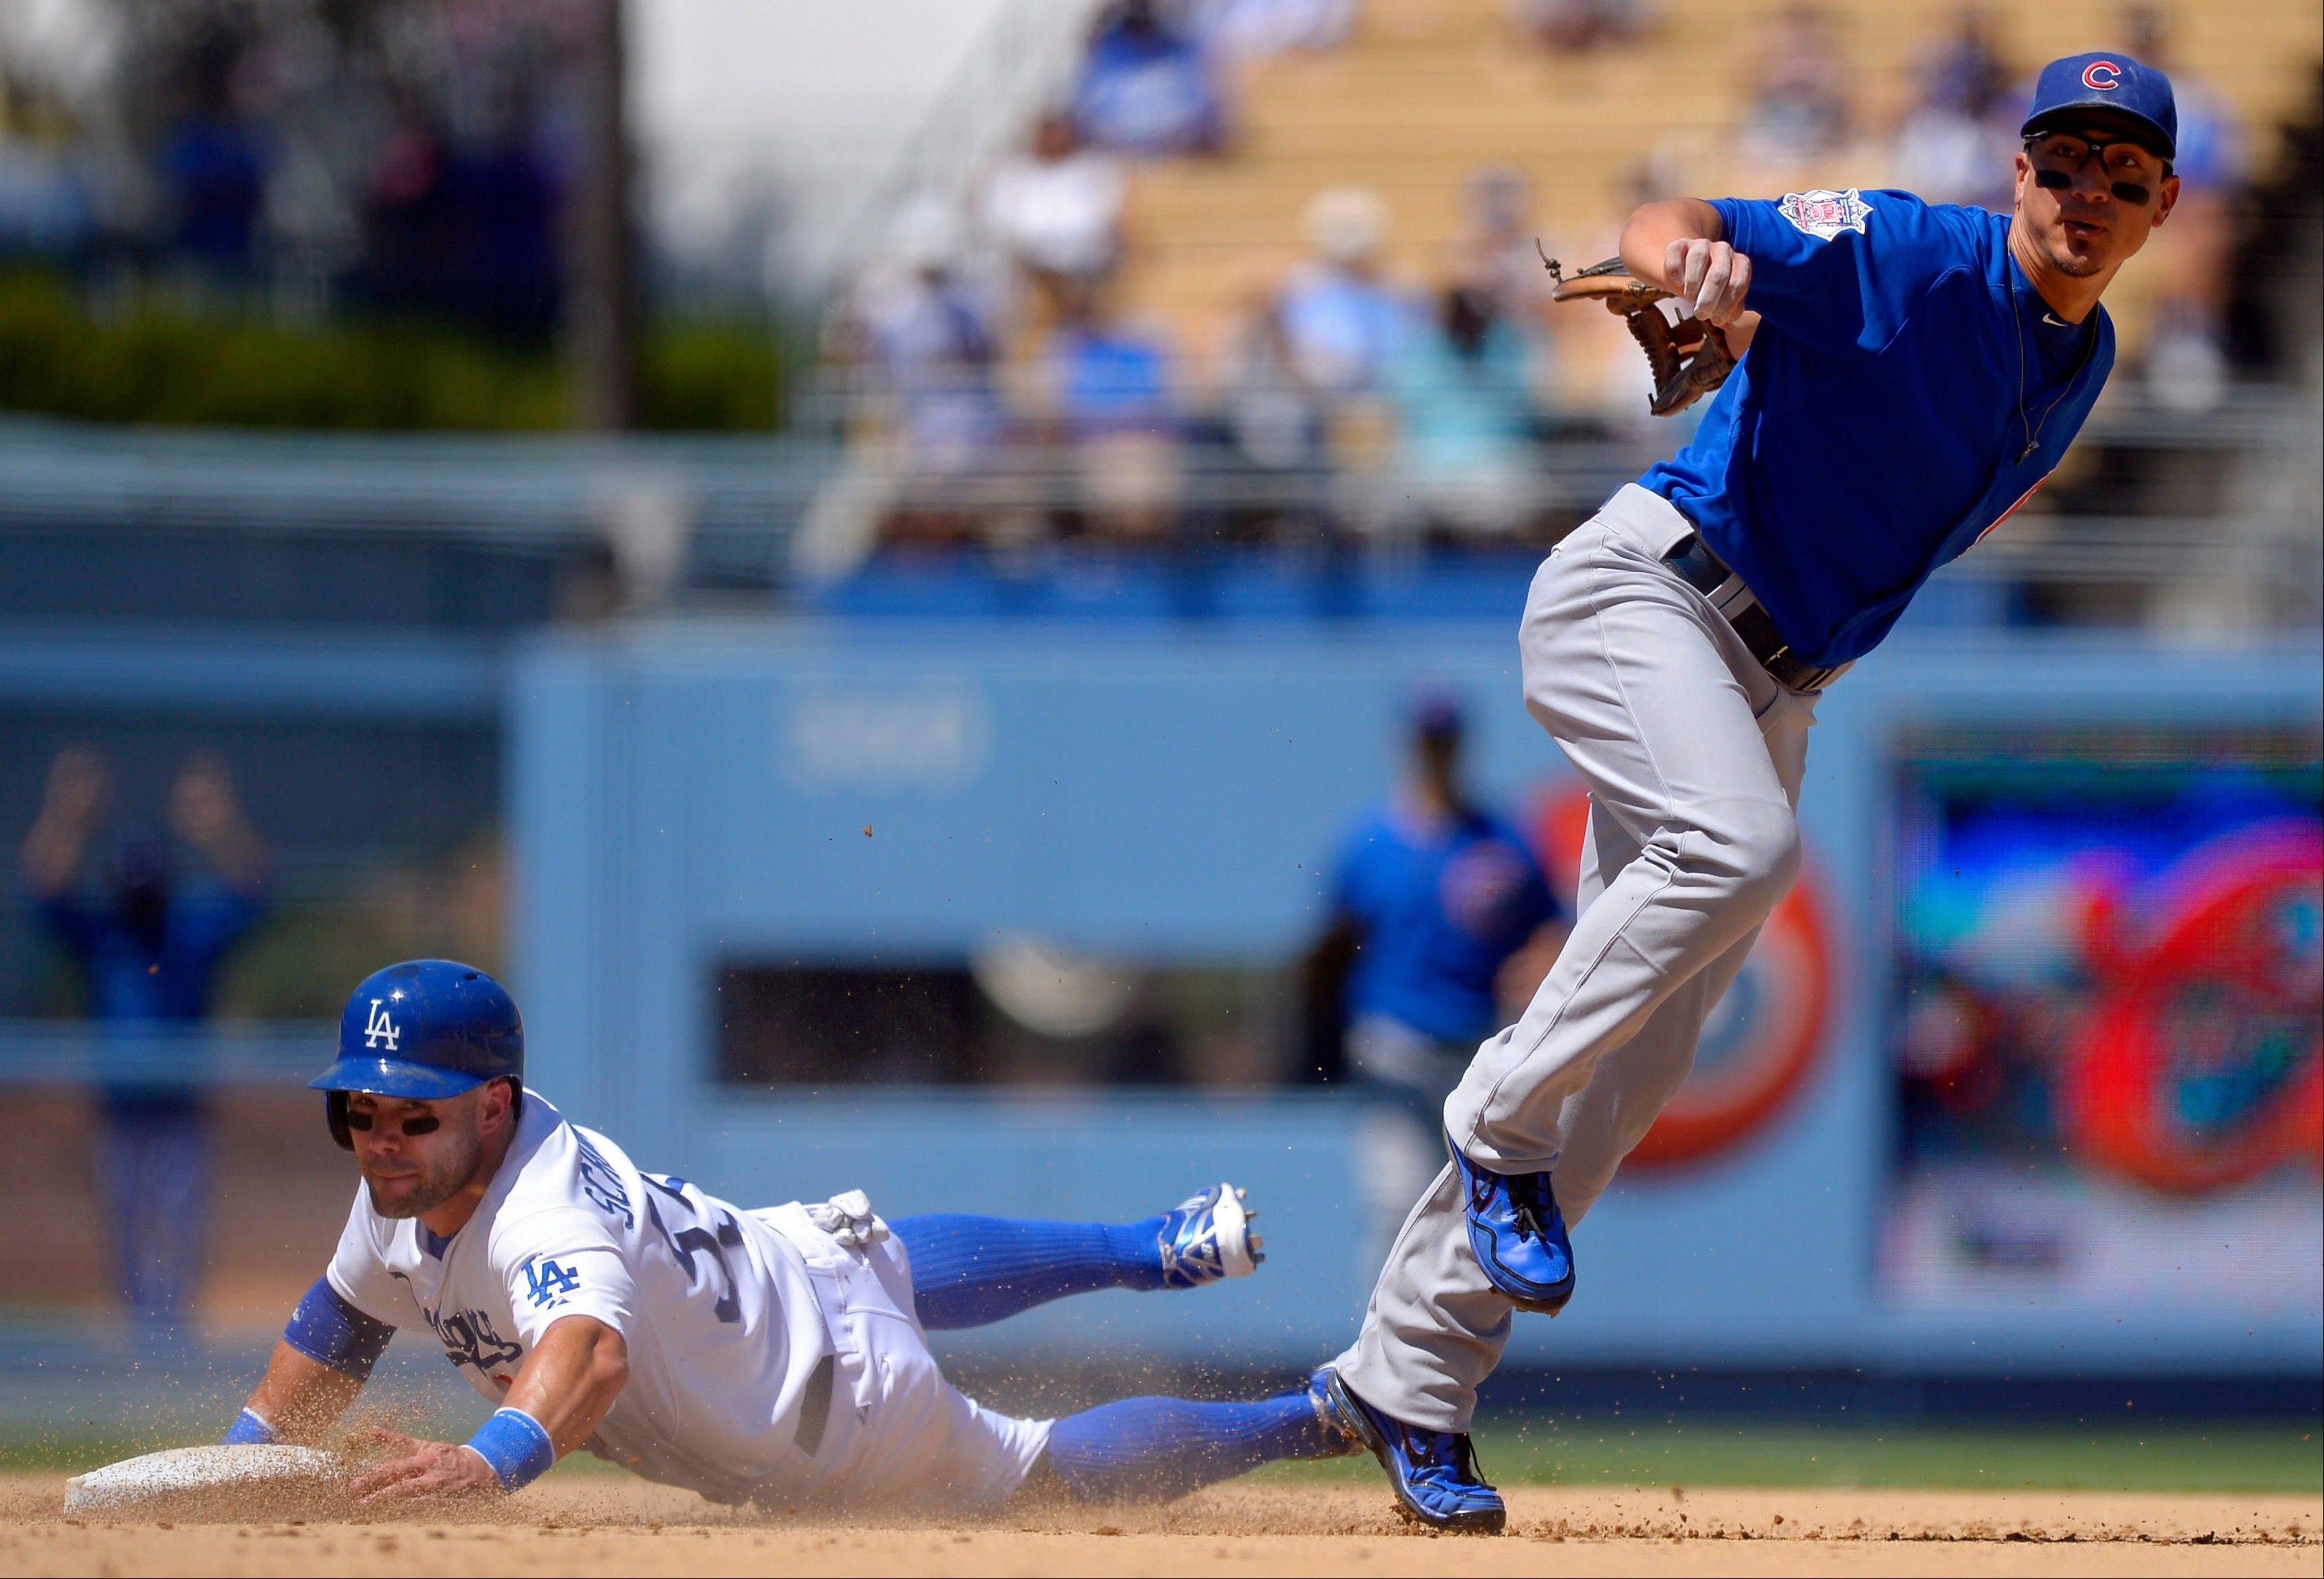 The Dodgers� Skip Schumaker, left, is forced out at second as Chicago Cubs second baseman Darwin Barney attempts to throw out Hanley Ramirez at first during Wednesday�s game in Los Angeles. The Cubs lost 4-0.